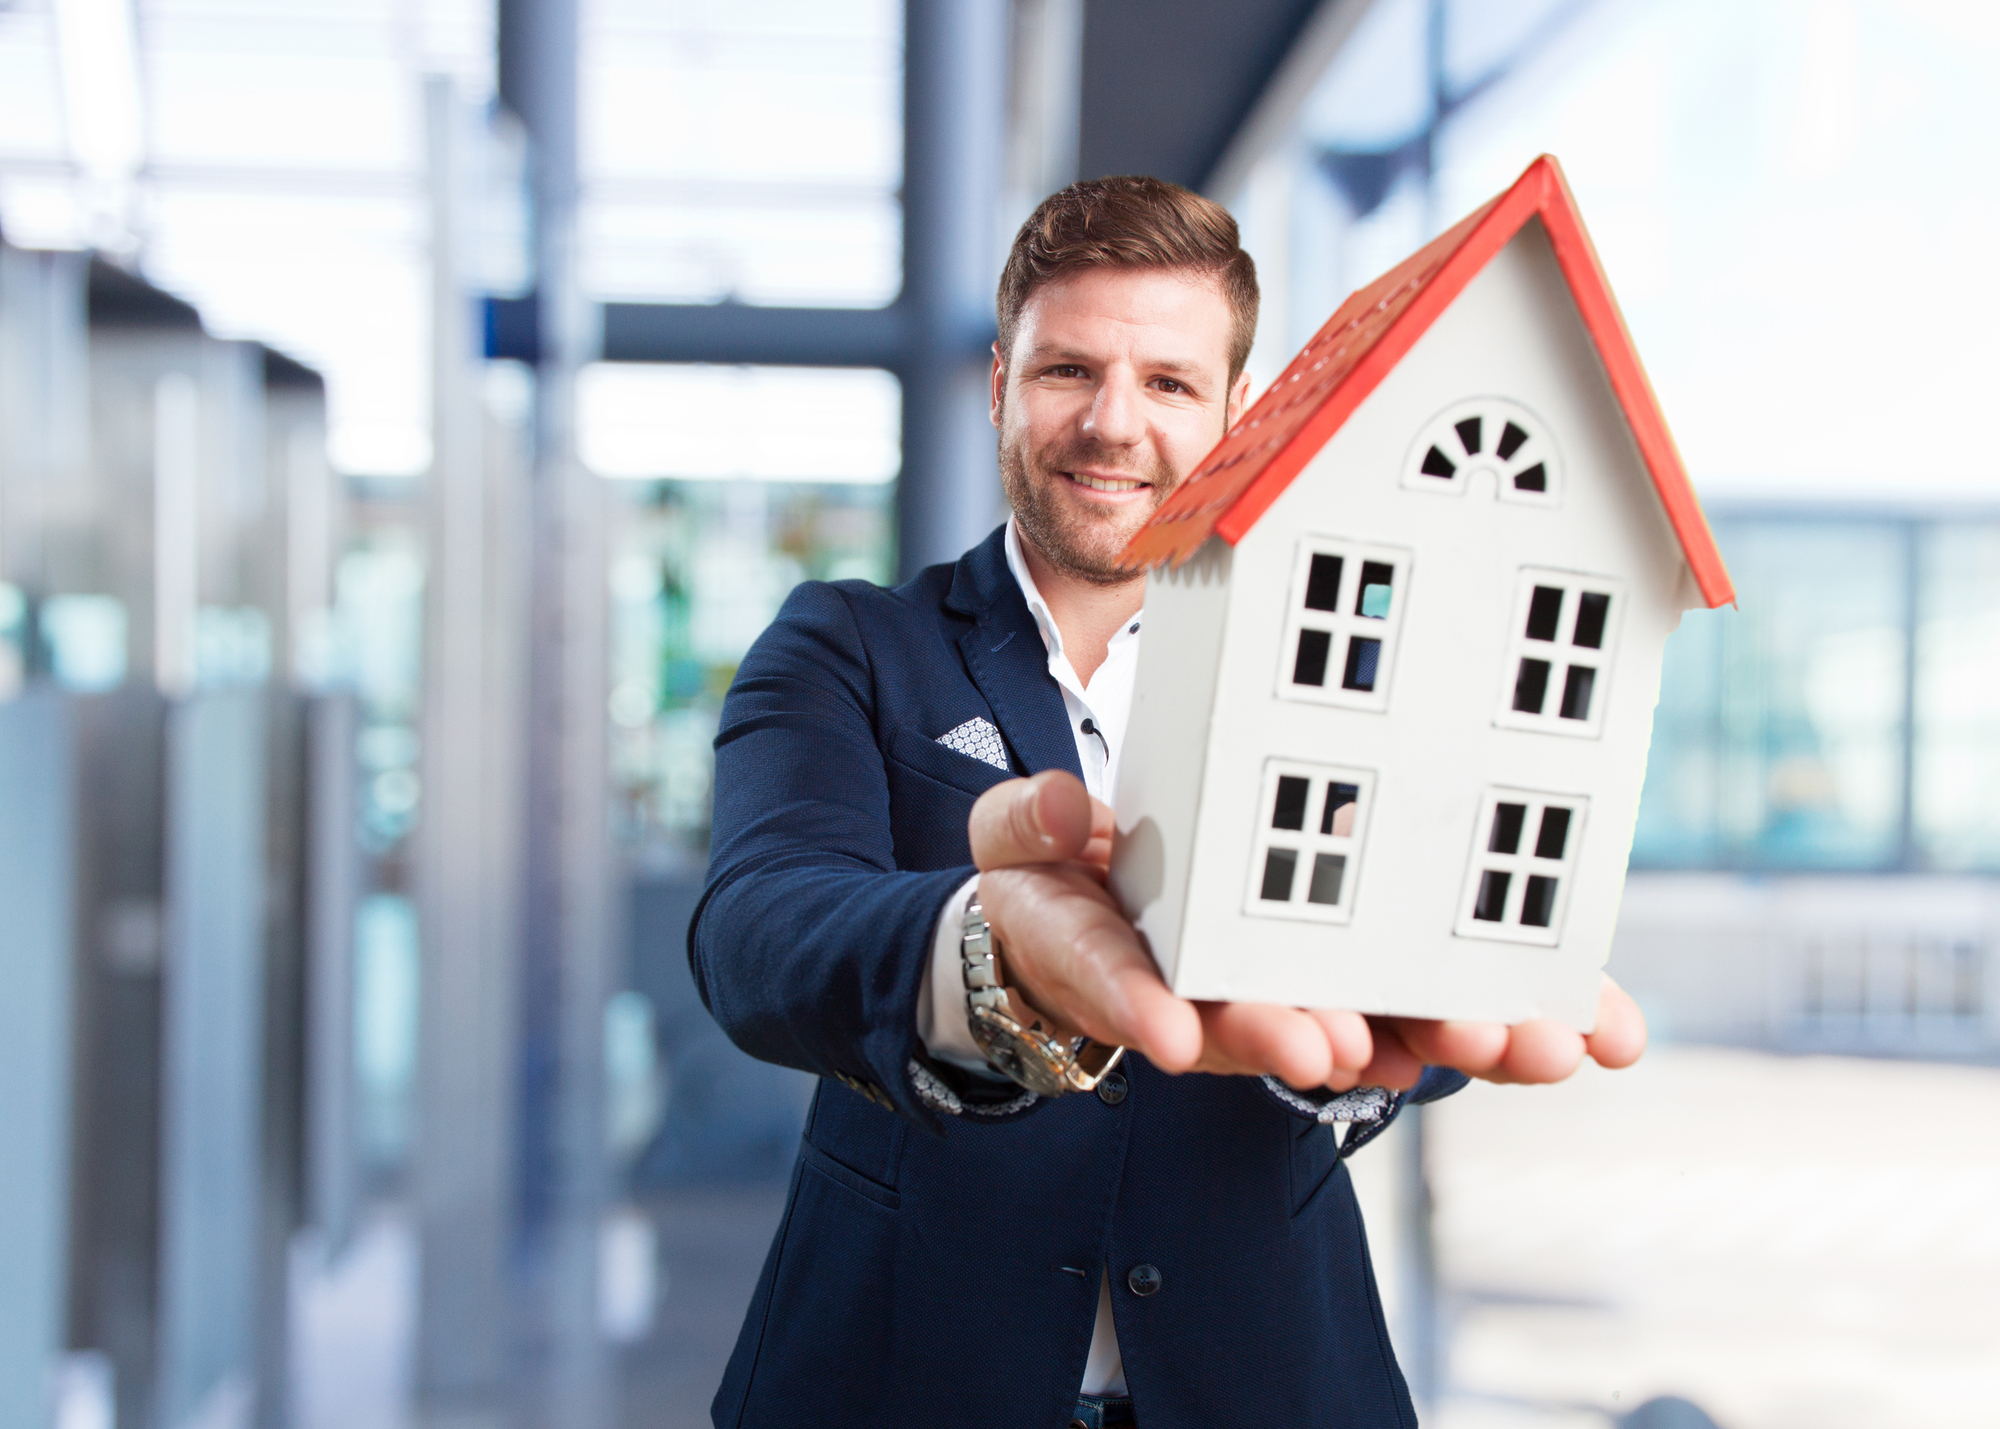 Young businessman with toy house